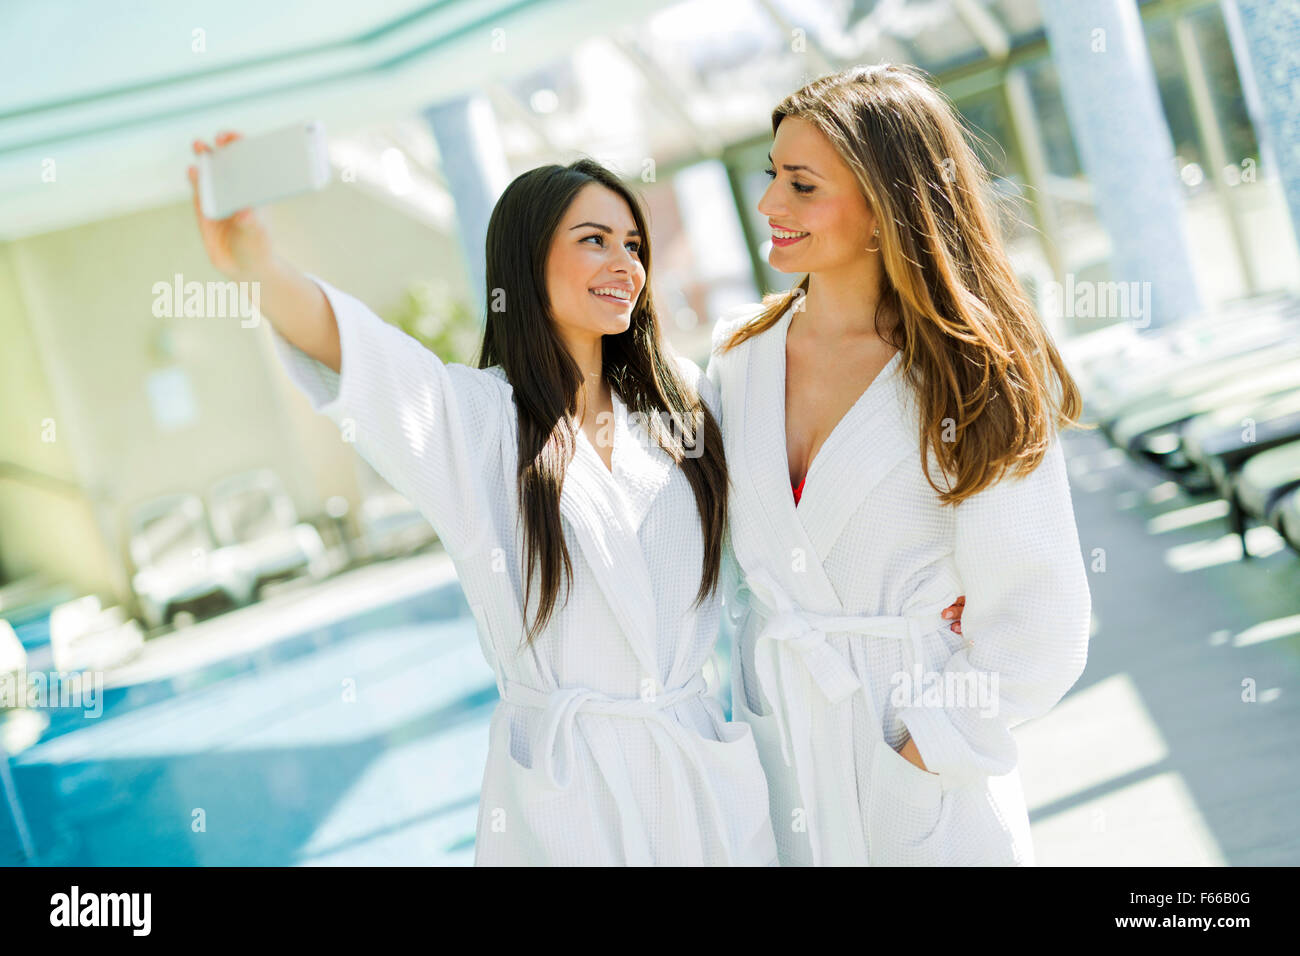 Two beautiful girls  taking a selfie next to a swimming pool - Stock Image